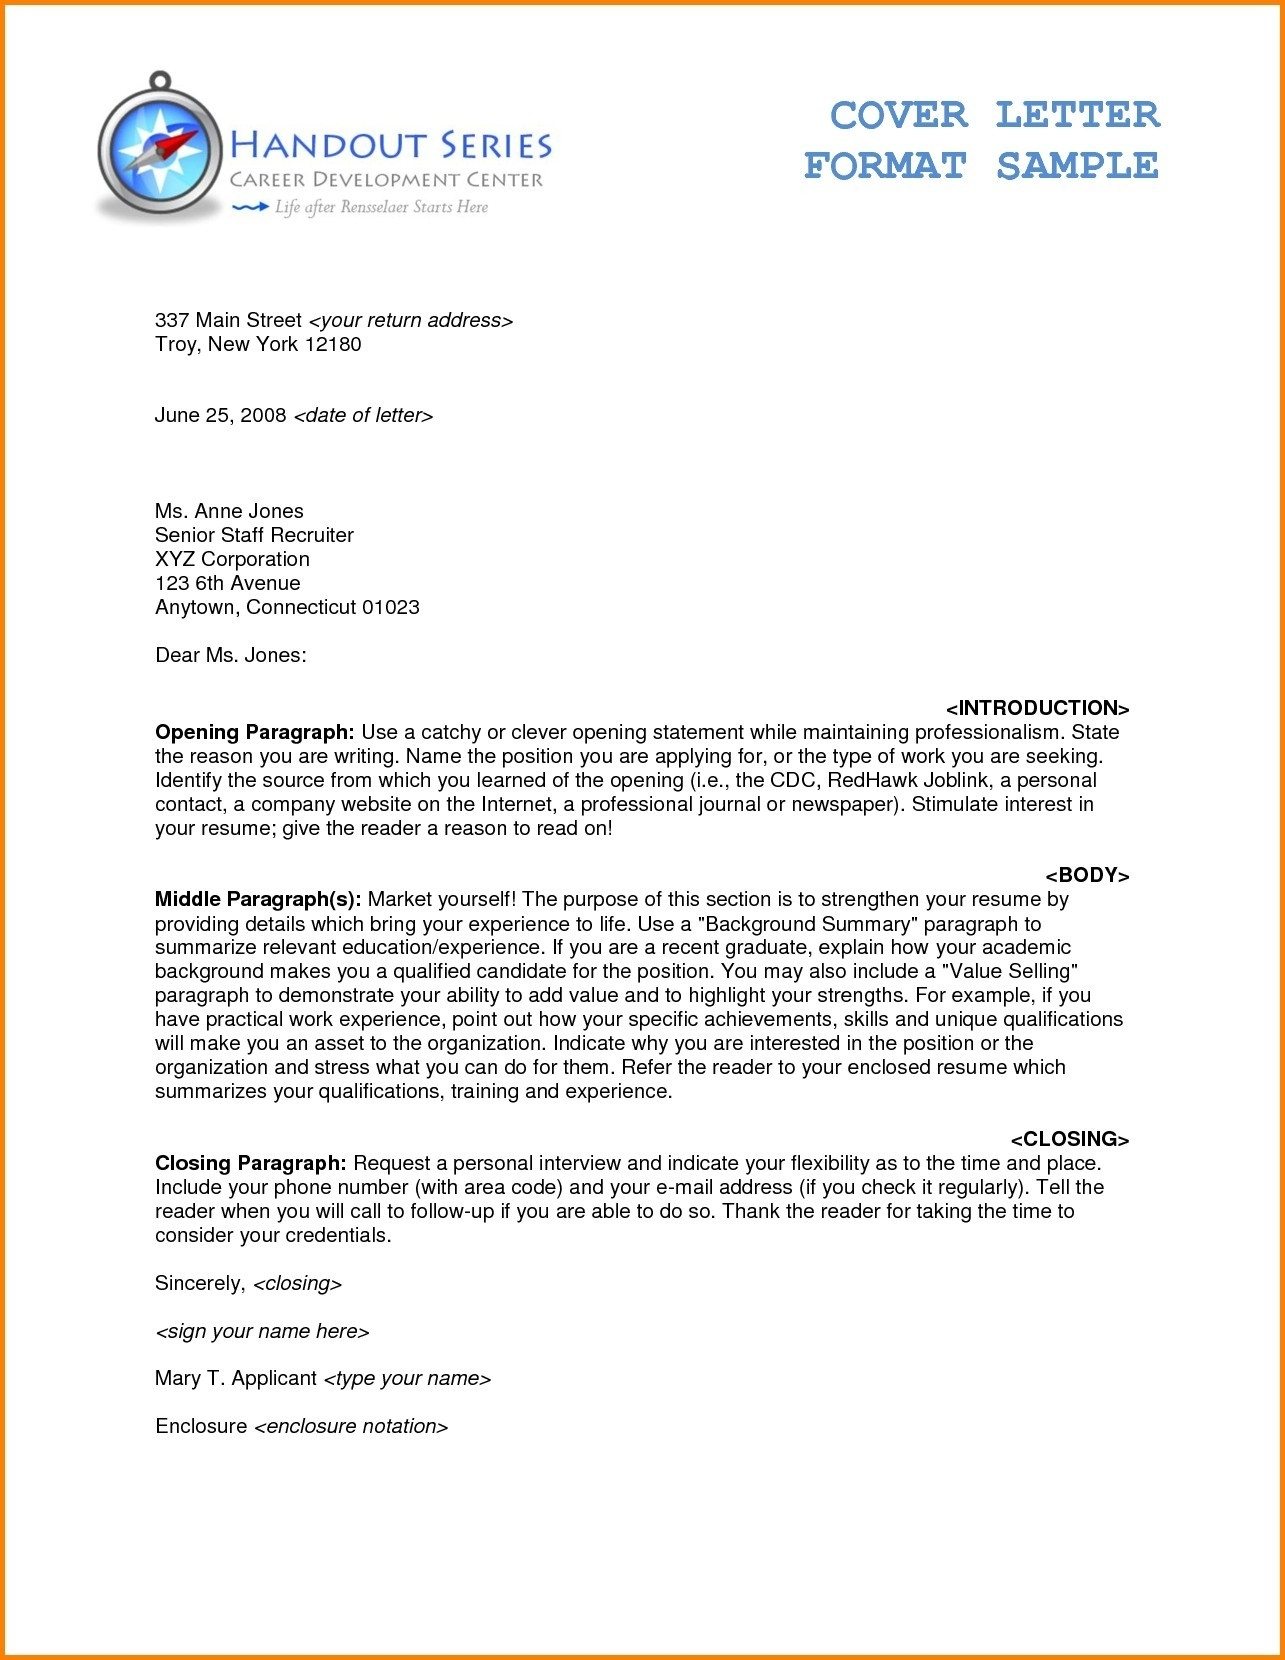 Business letter format enclosure examples and forms quotation letter format in word fresh business letter format regarding business letter format enclosure 20098 spiritdancerdesigns